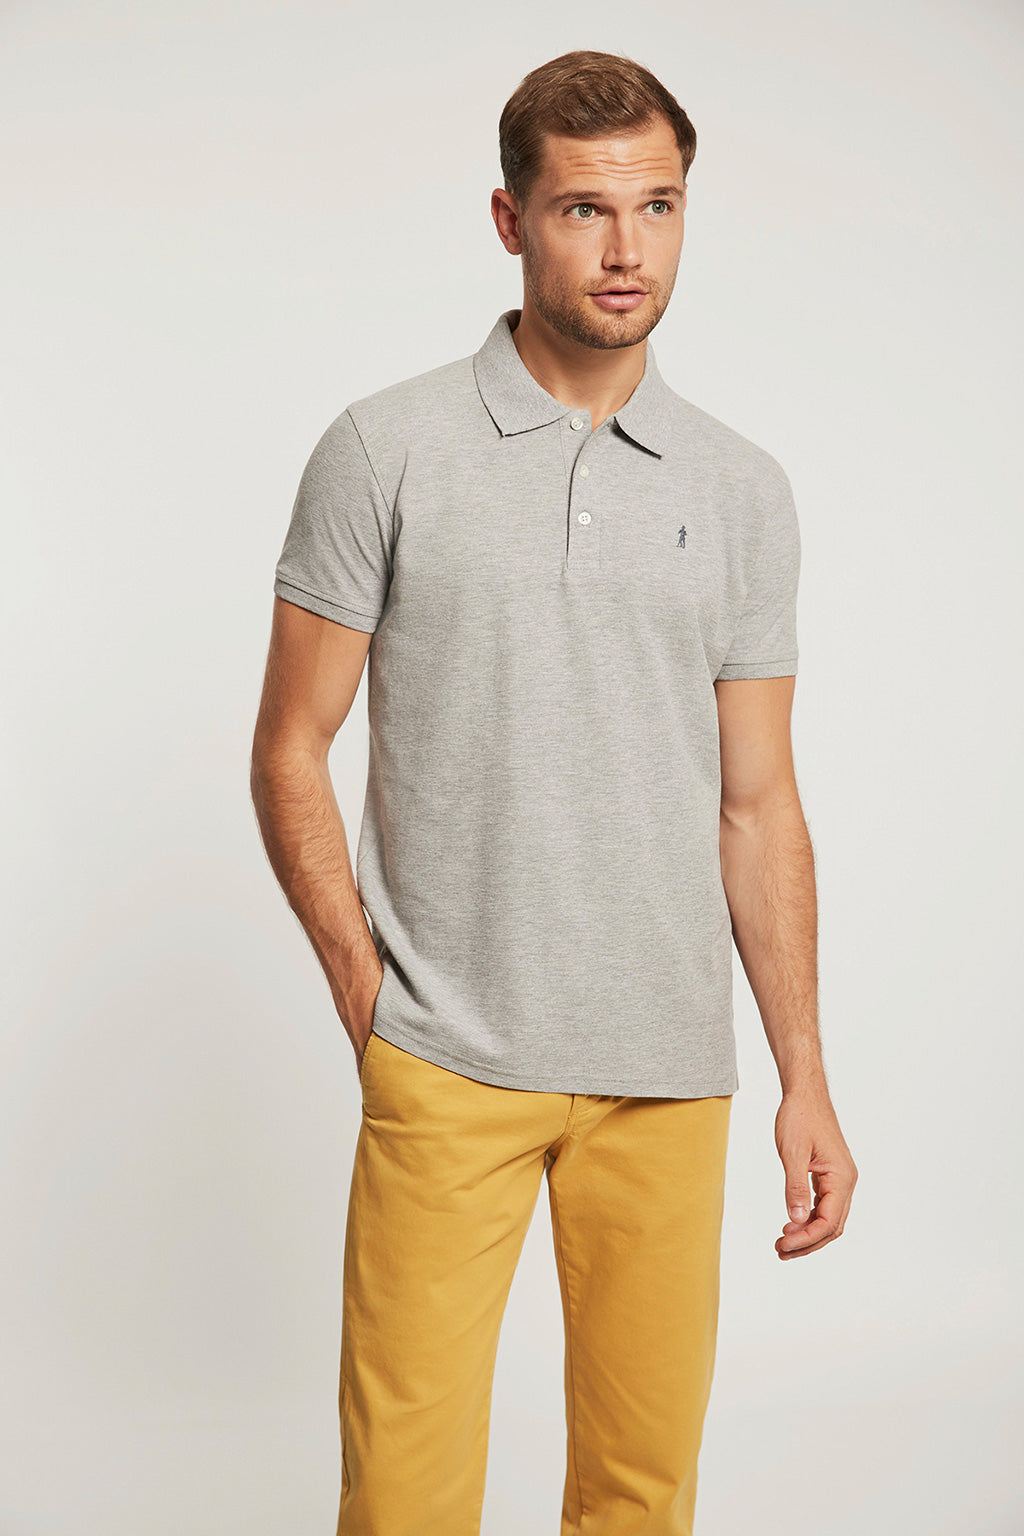 Grey vigore polo shirt with embroidery